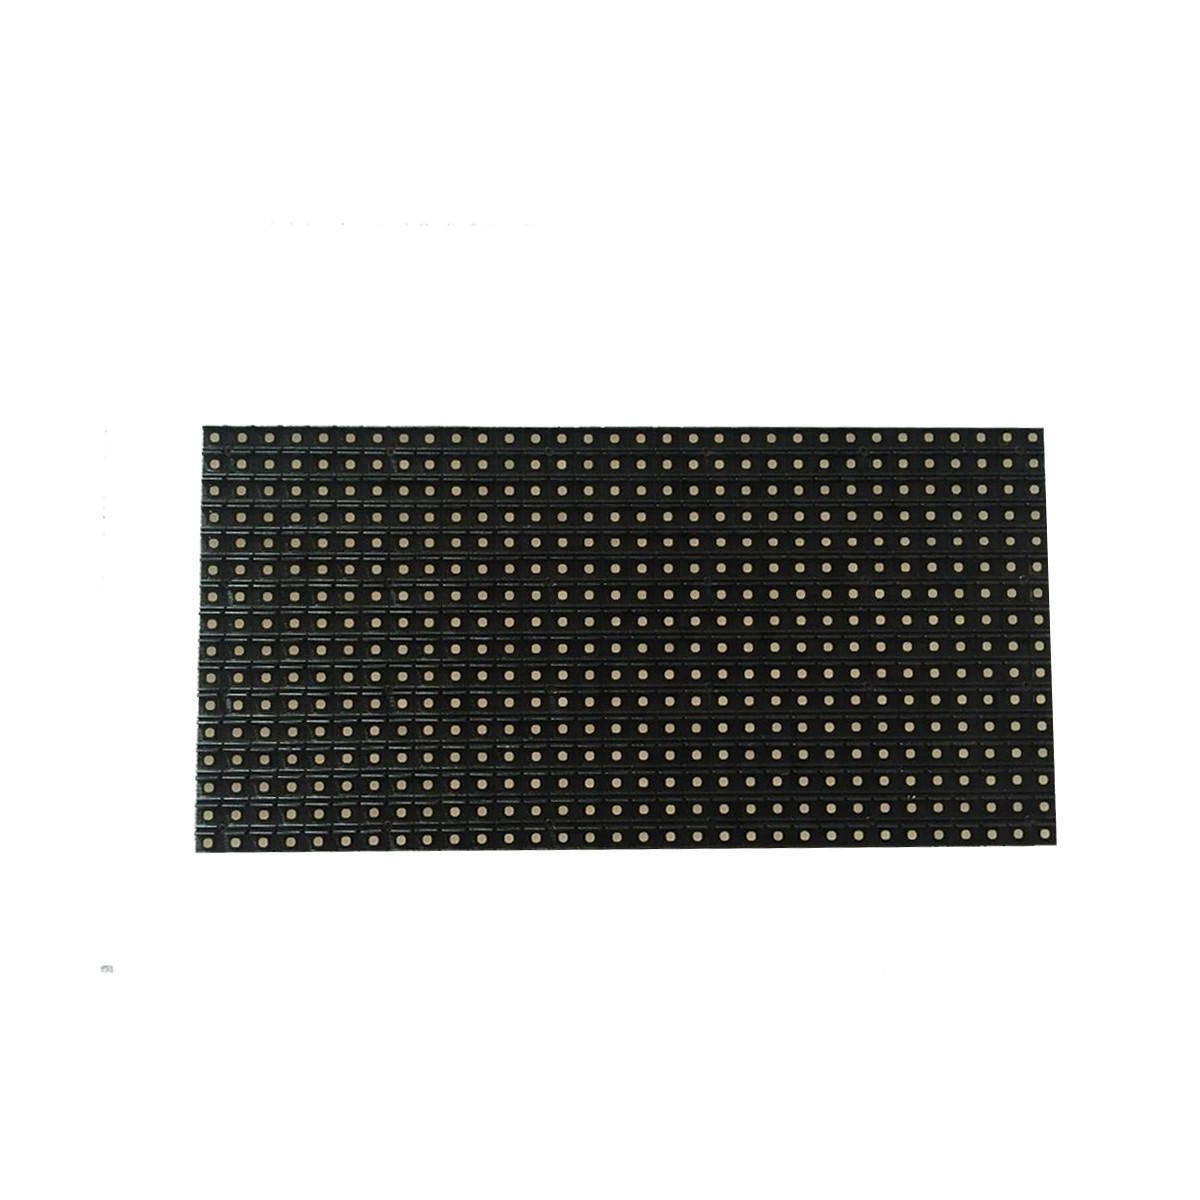 P8 Outdoor SMD LED Display Module 256*128mm SMD3535 5000cd/㎡ Brightness 1920Hz High Refresh